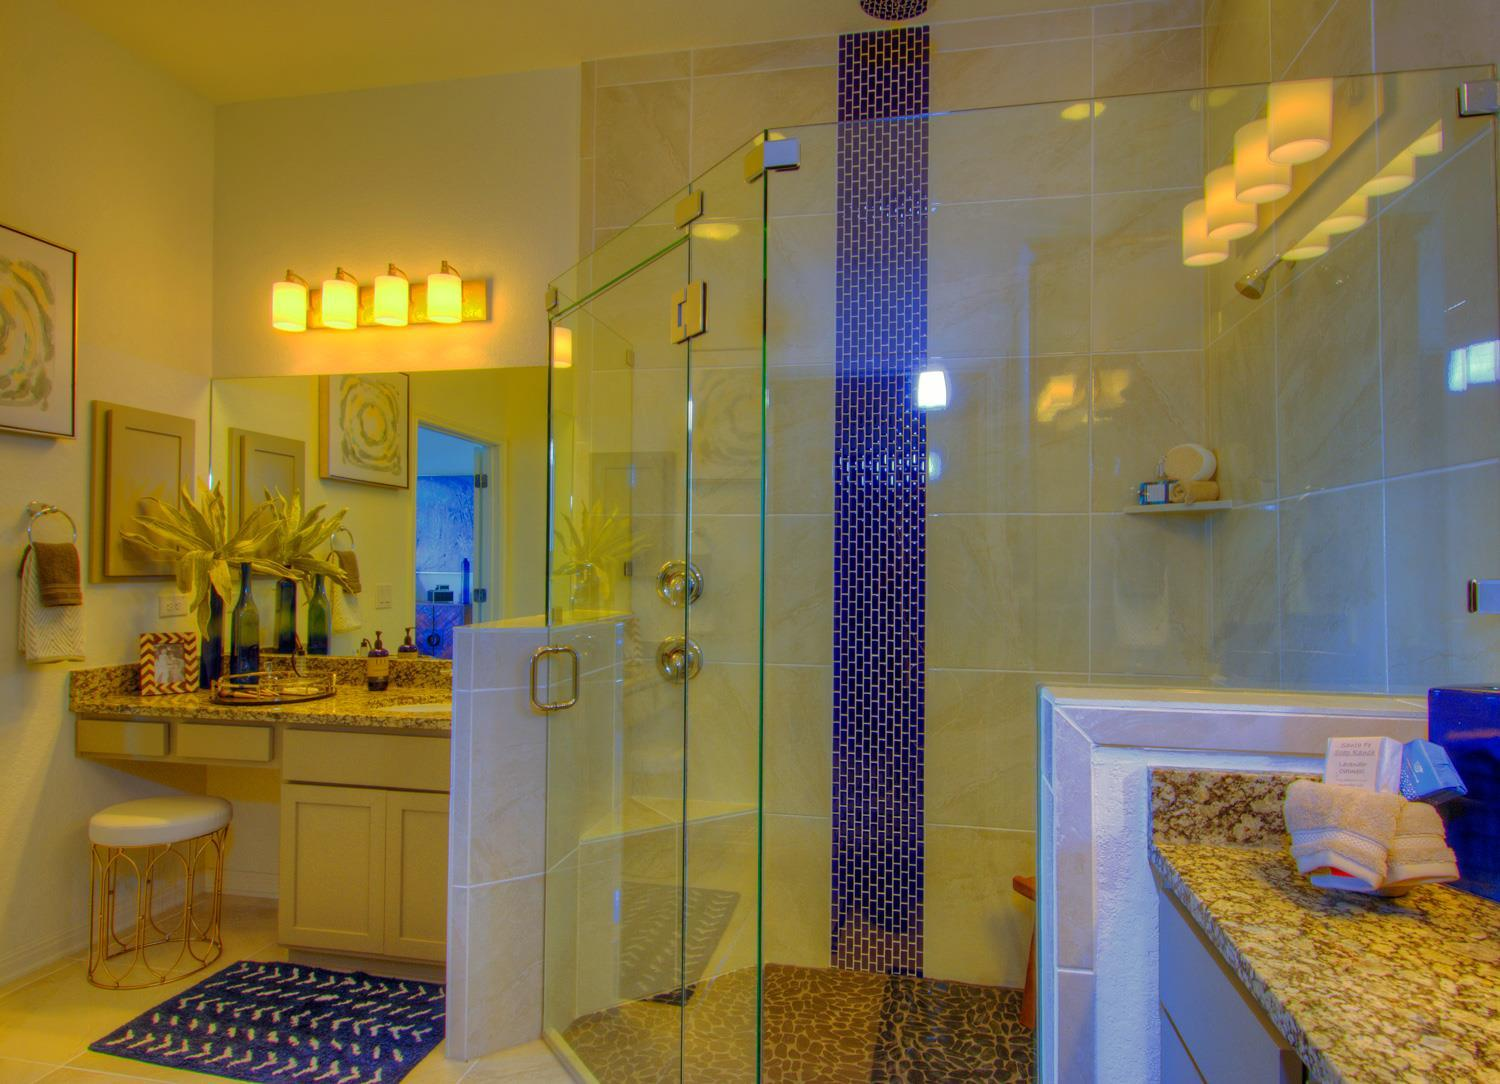 Bathroom featured in the Roma Weston Oaks By Sitterle Homes in San Antonio, TX